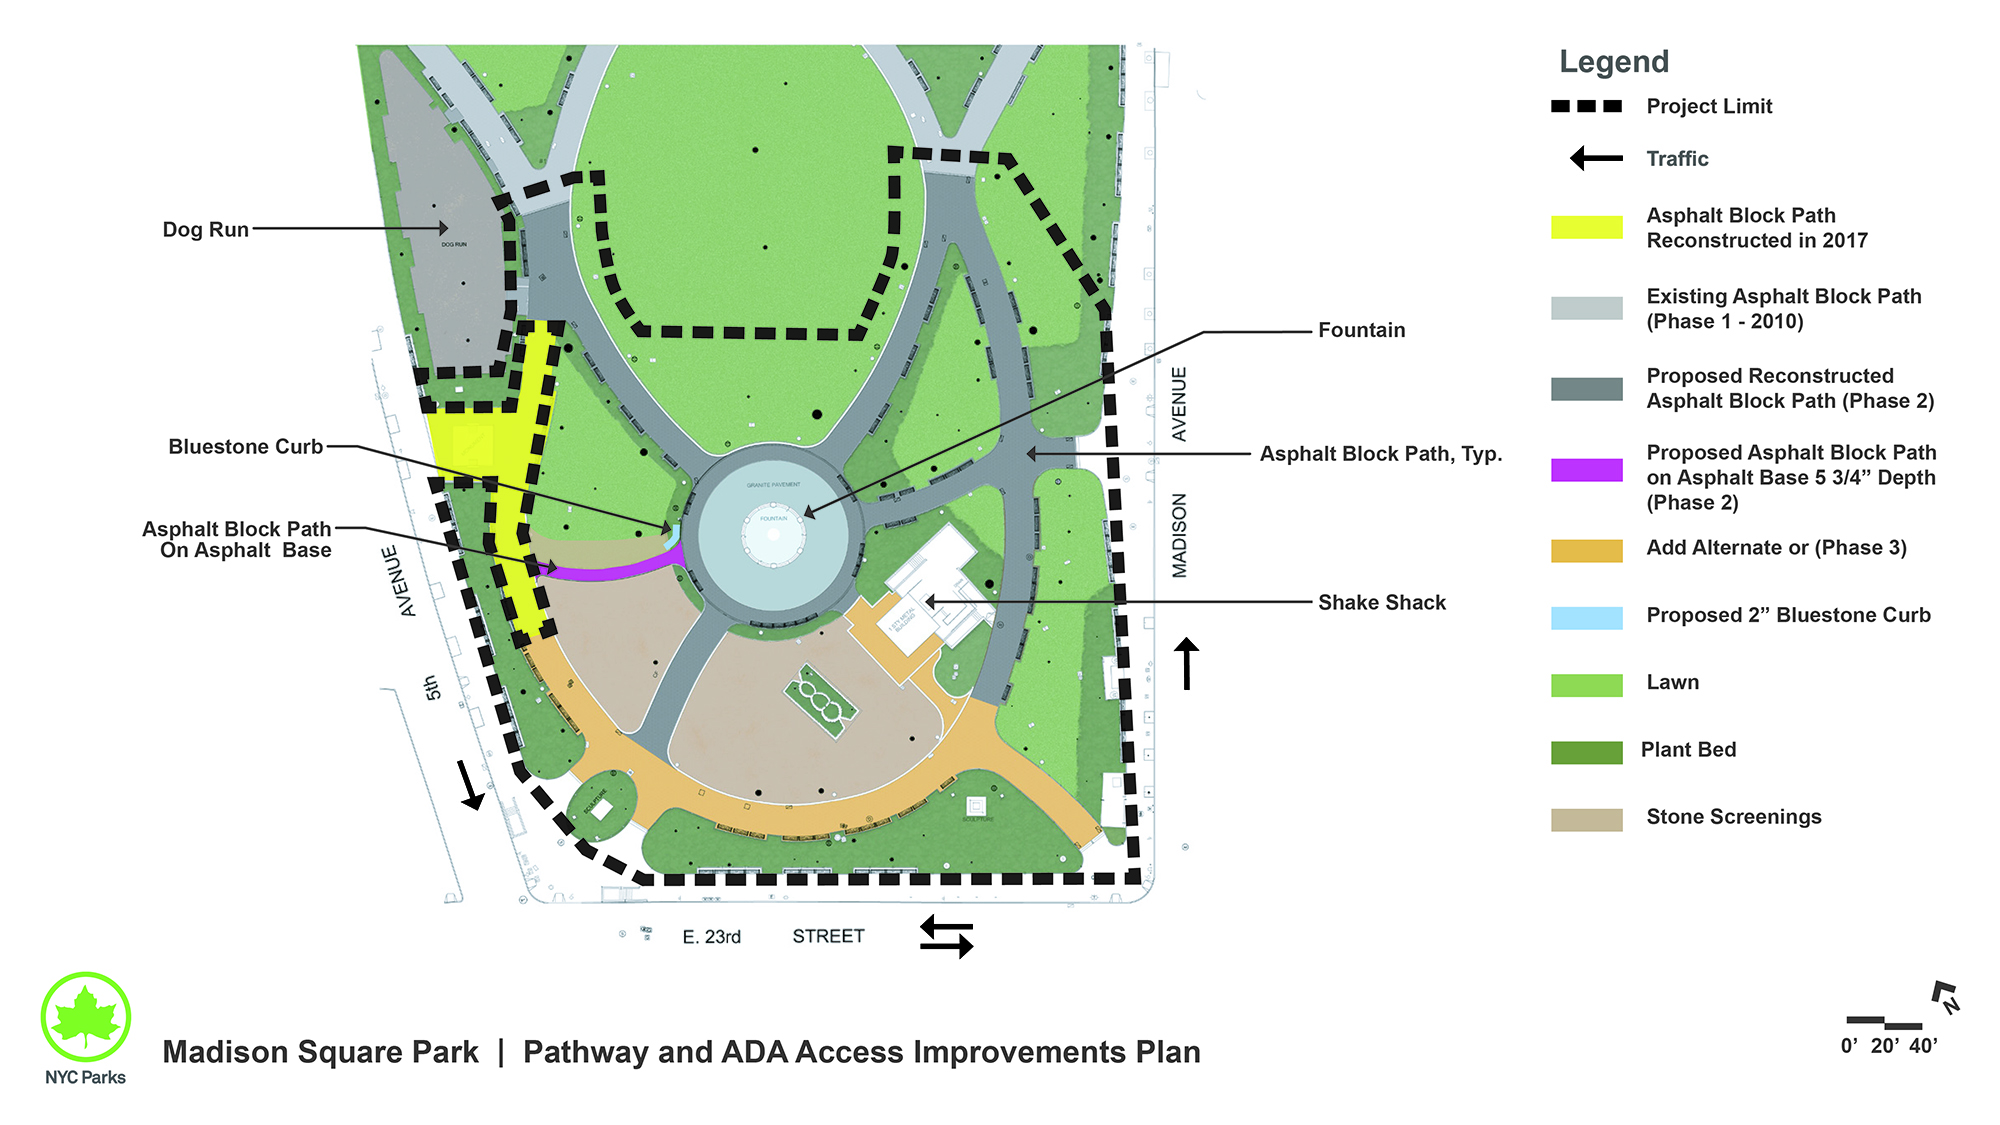 Design of Madison Square Park Pavement Reconstruction